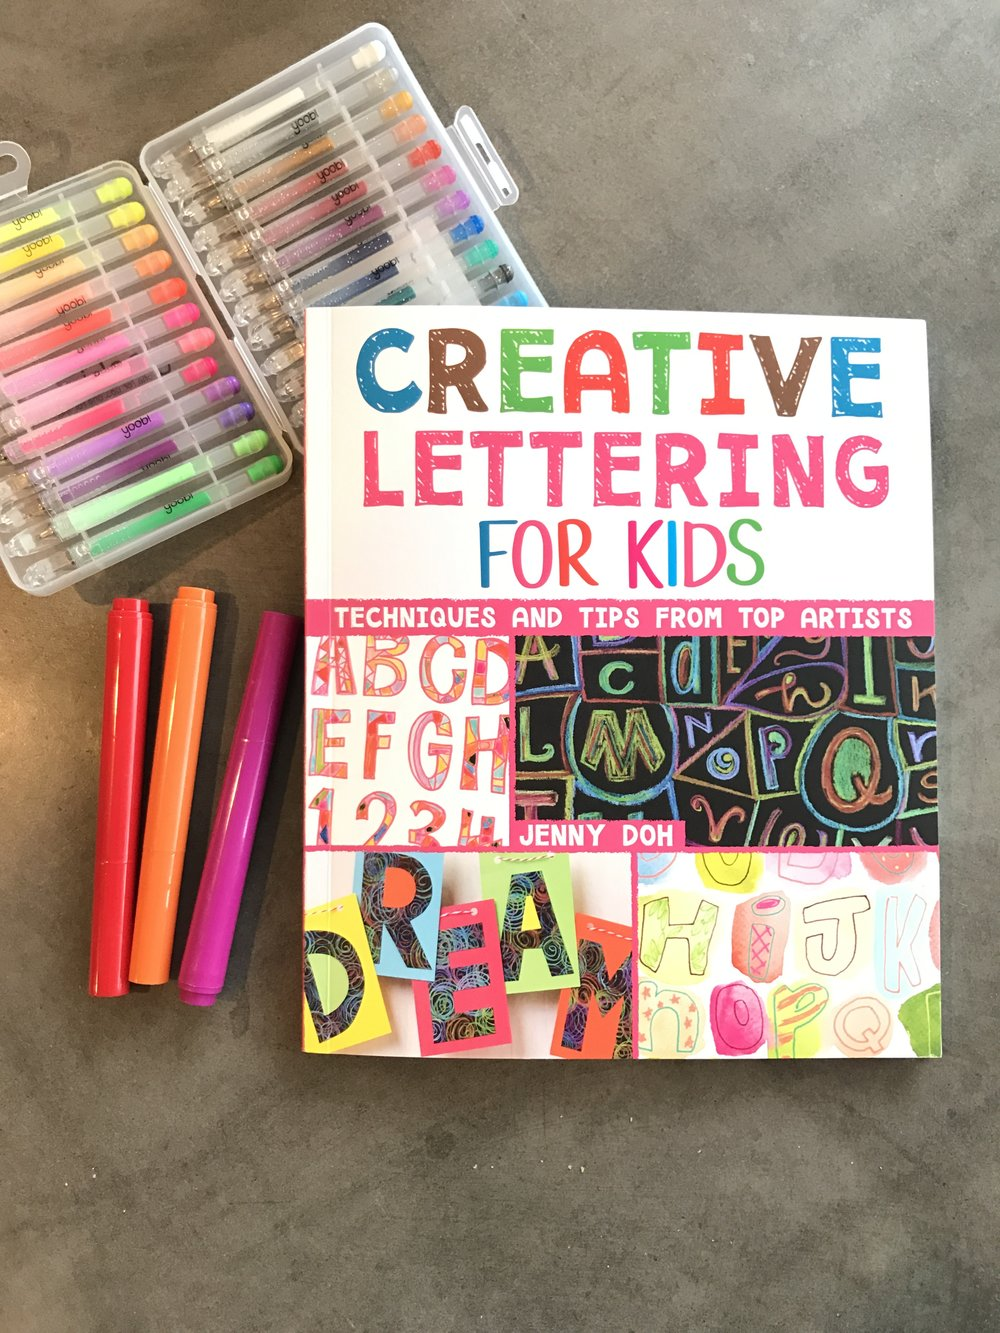 Creative Lettering book!